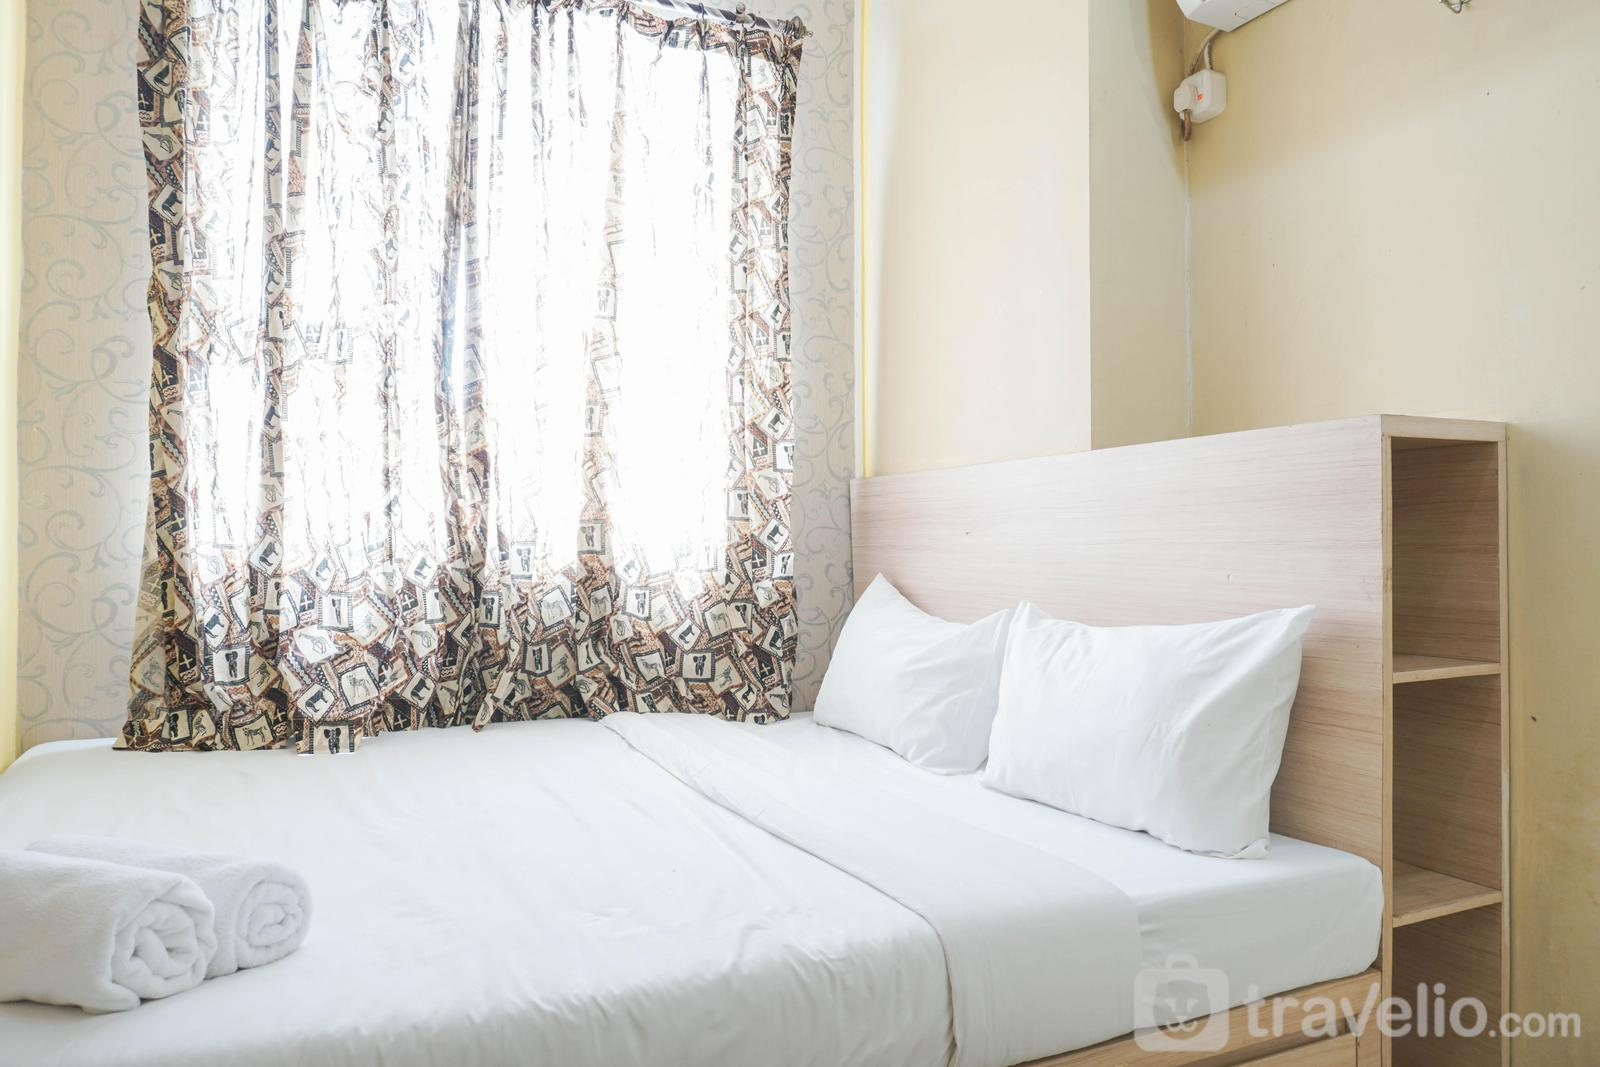 Apartemen Menteng Square - Comfy and Strategic 2BR at Menteng Square Apartment By Travelio